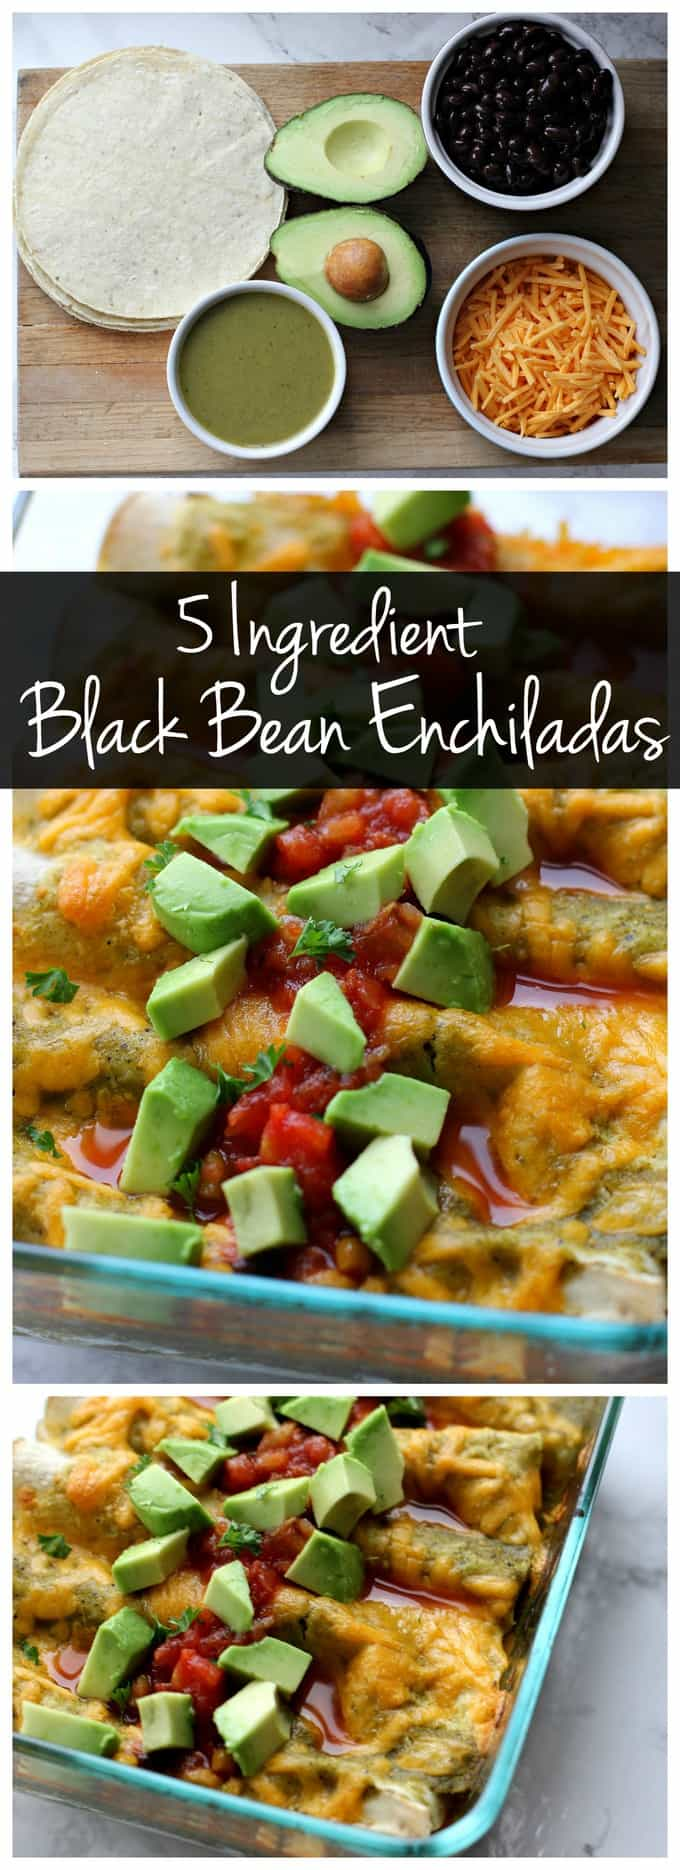 These 5 ingredient black bean enchiladas only take a few minutes to assemble so they\'re a perfect vegetarian weeknight recipe! Try these with your favorite salsa verde. You won\'t believe how easy this recipe is!